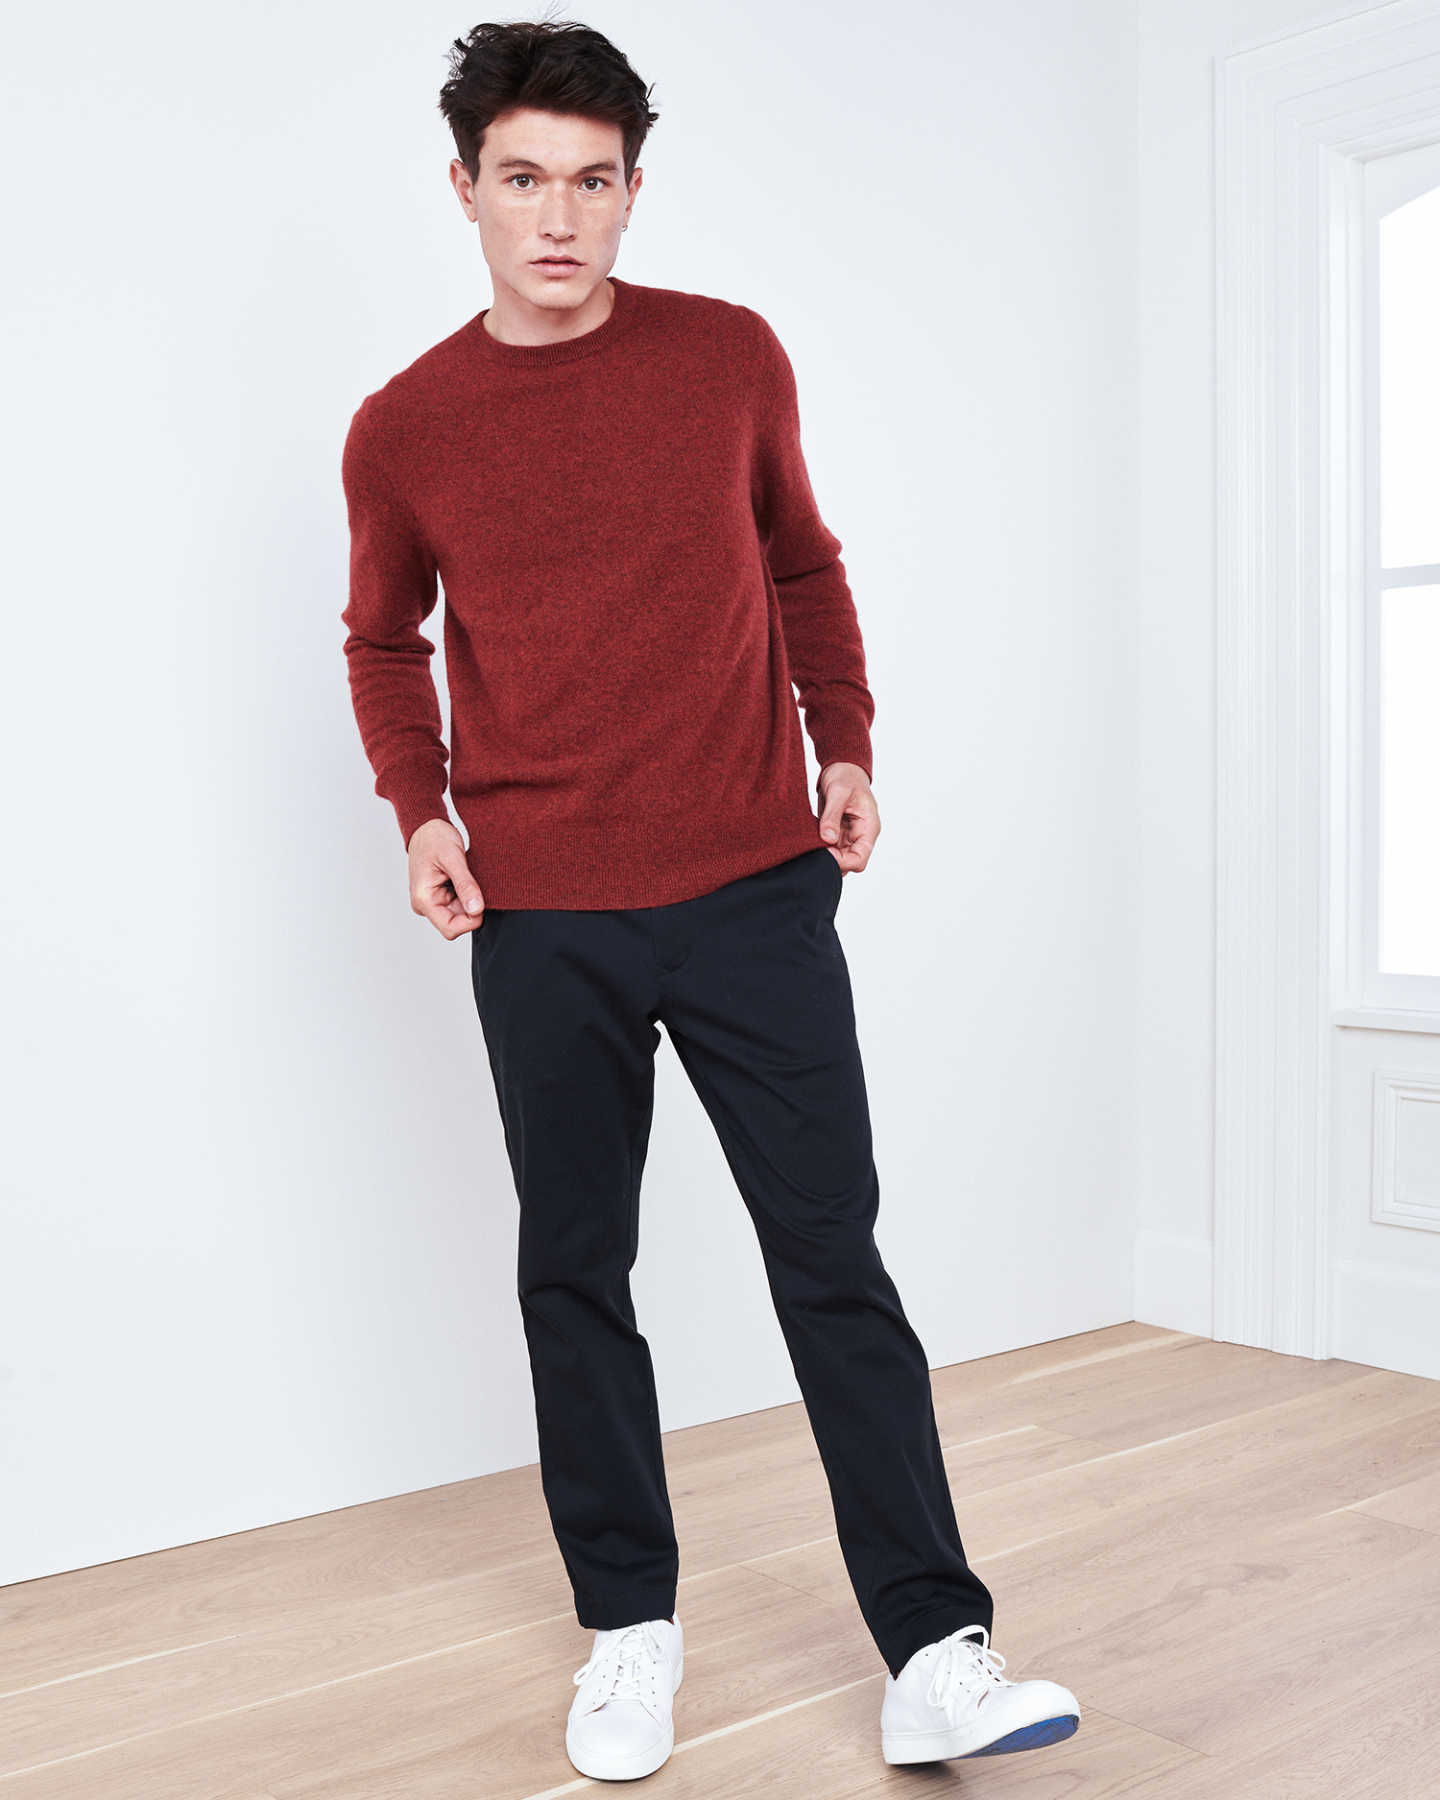 Man wearing red men's cashmere sweater by window